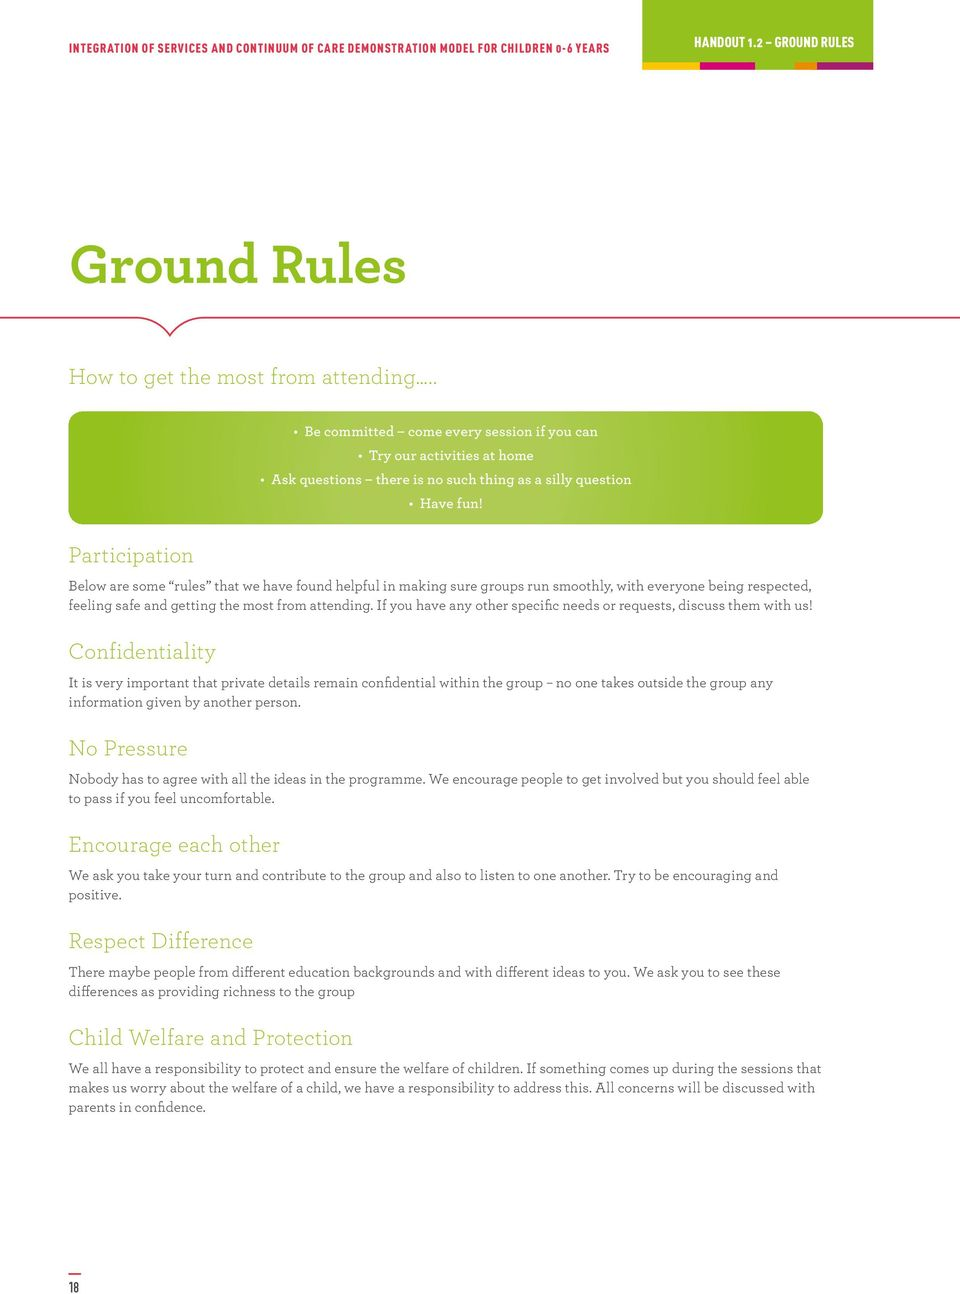 Participation Below are some rules that we have found helpful in making sure groups run smoothly, with everyone being respected, feeling safe and getting the most from attending.